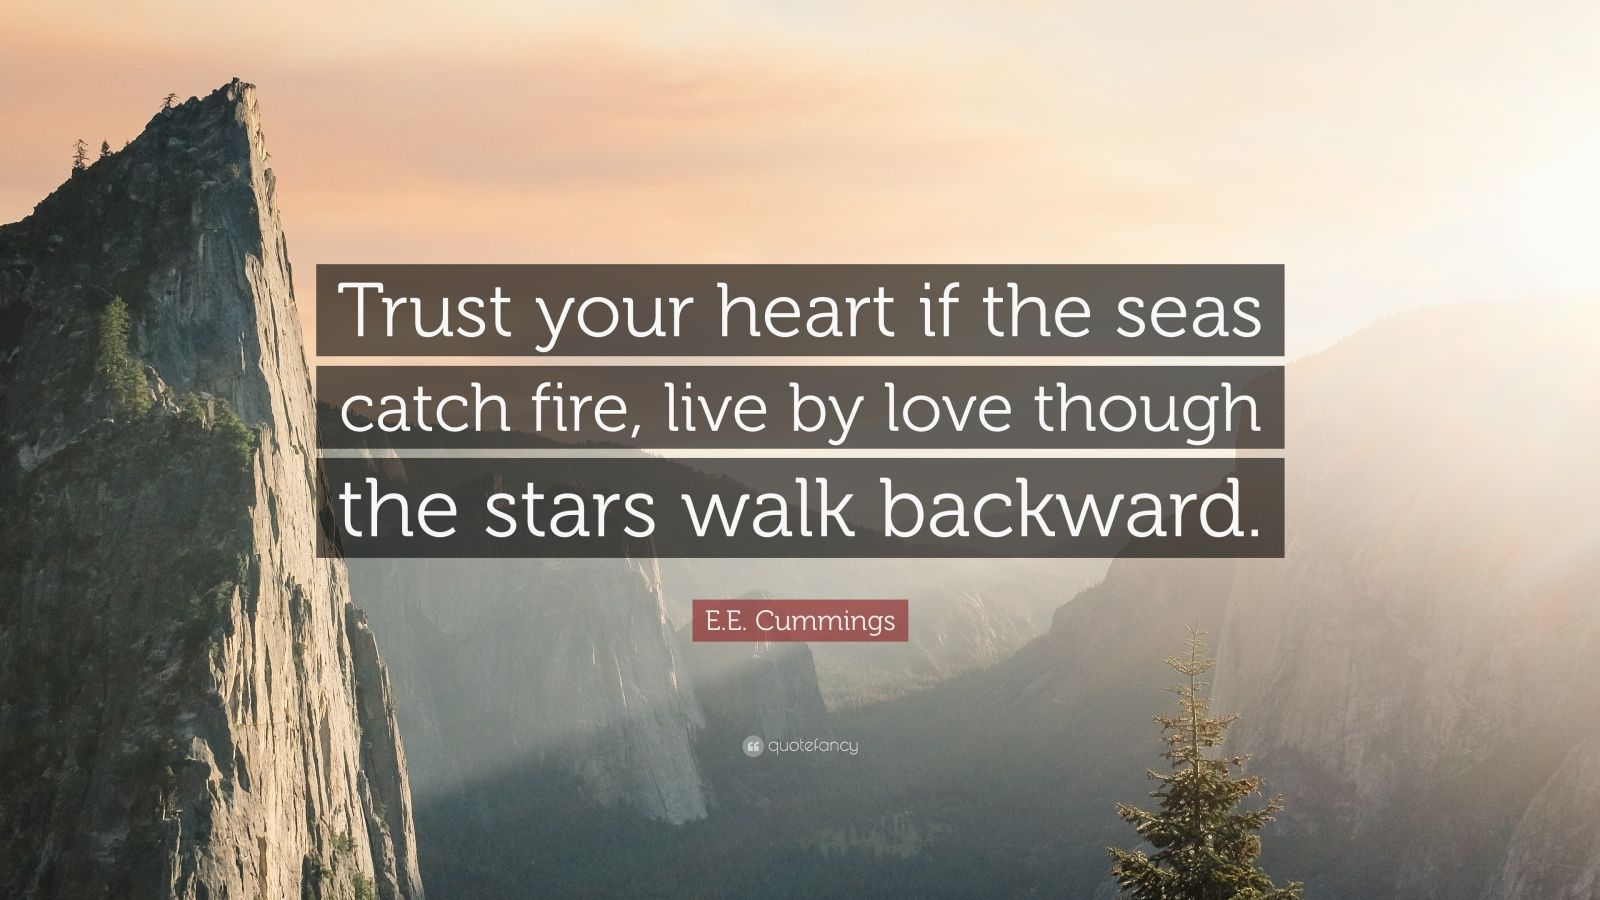 Startup Quotes Wallpaper E E Cummings Quote Trust Your Heart If The Seas Catch